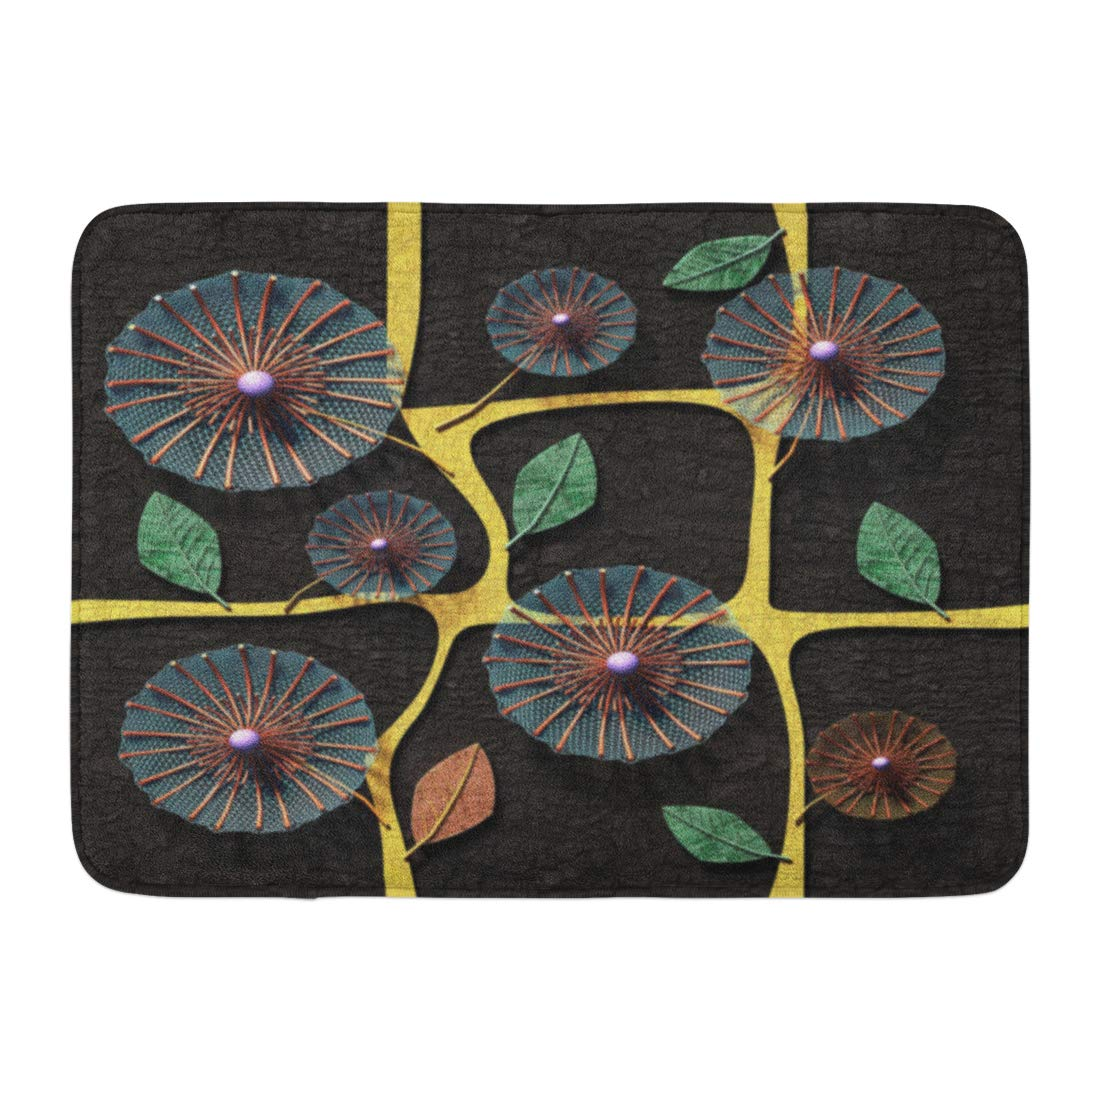 GODPOK Abstract Brown Wall 3D Copper Flowers Red Wood Golden Rug Doormat Bath Mat 23.6x15.7 inch